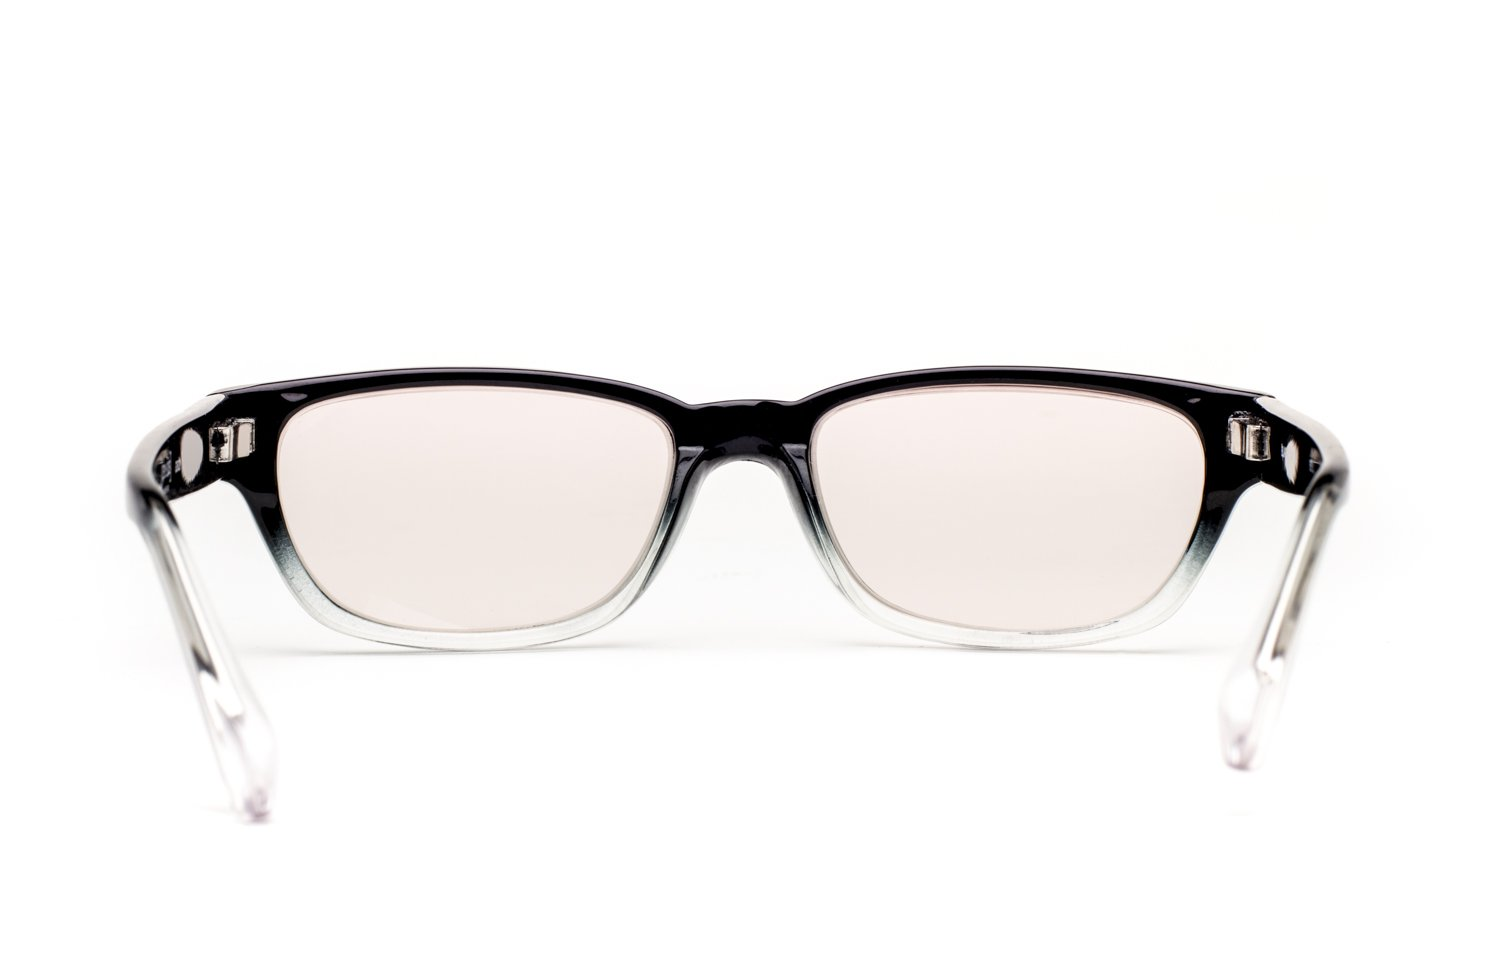 305bf3f7d87 Amazon.com   High Quality Glass Lens Reading Glasses with UV Blocking  Comfort Tint in Designer European Acetate Frame Available +0.25 to +3.00  Magnification ...